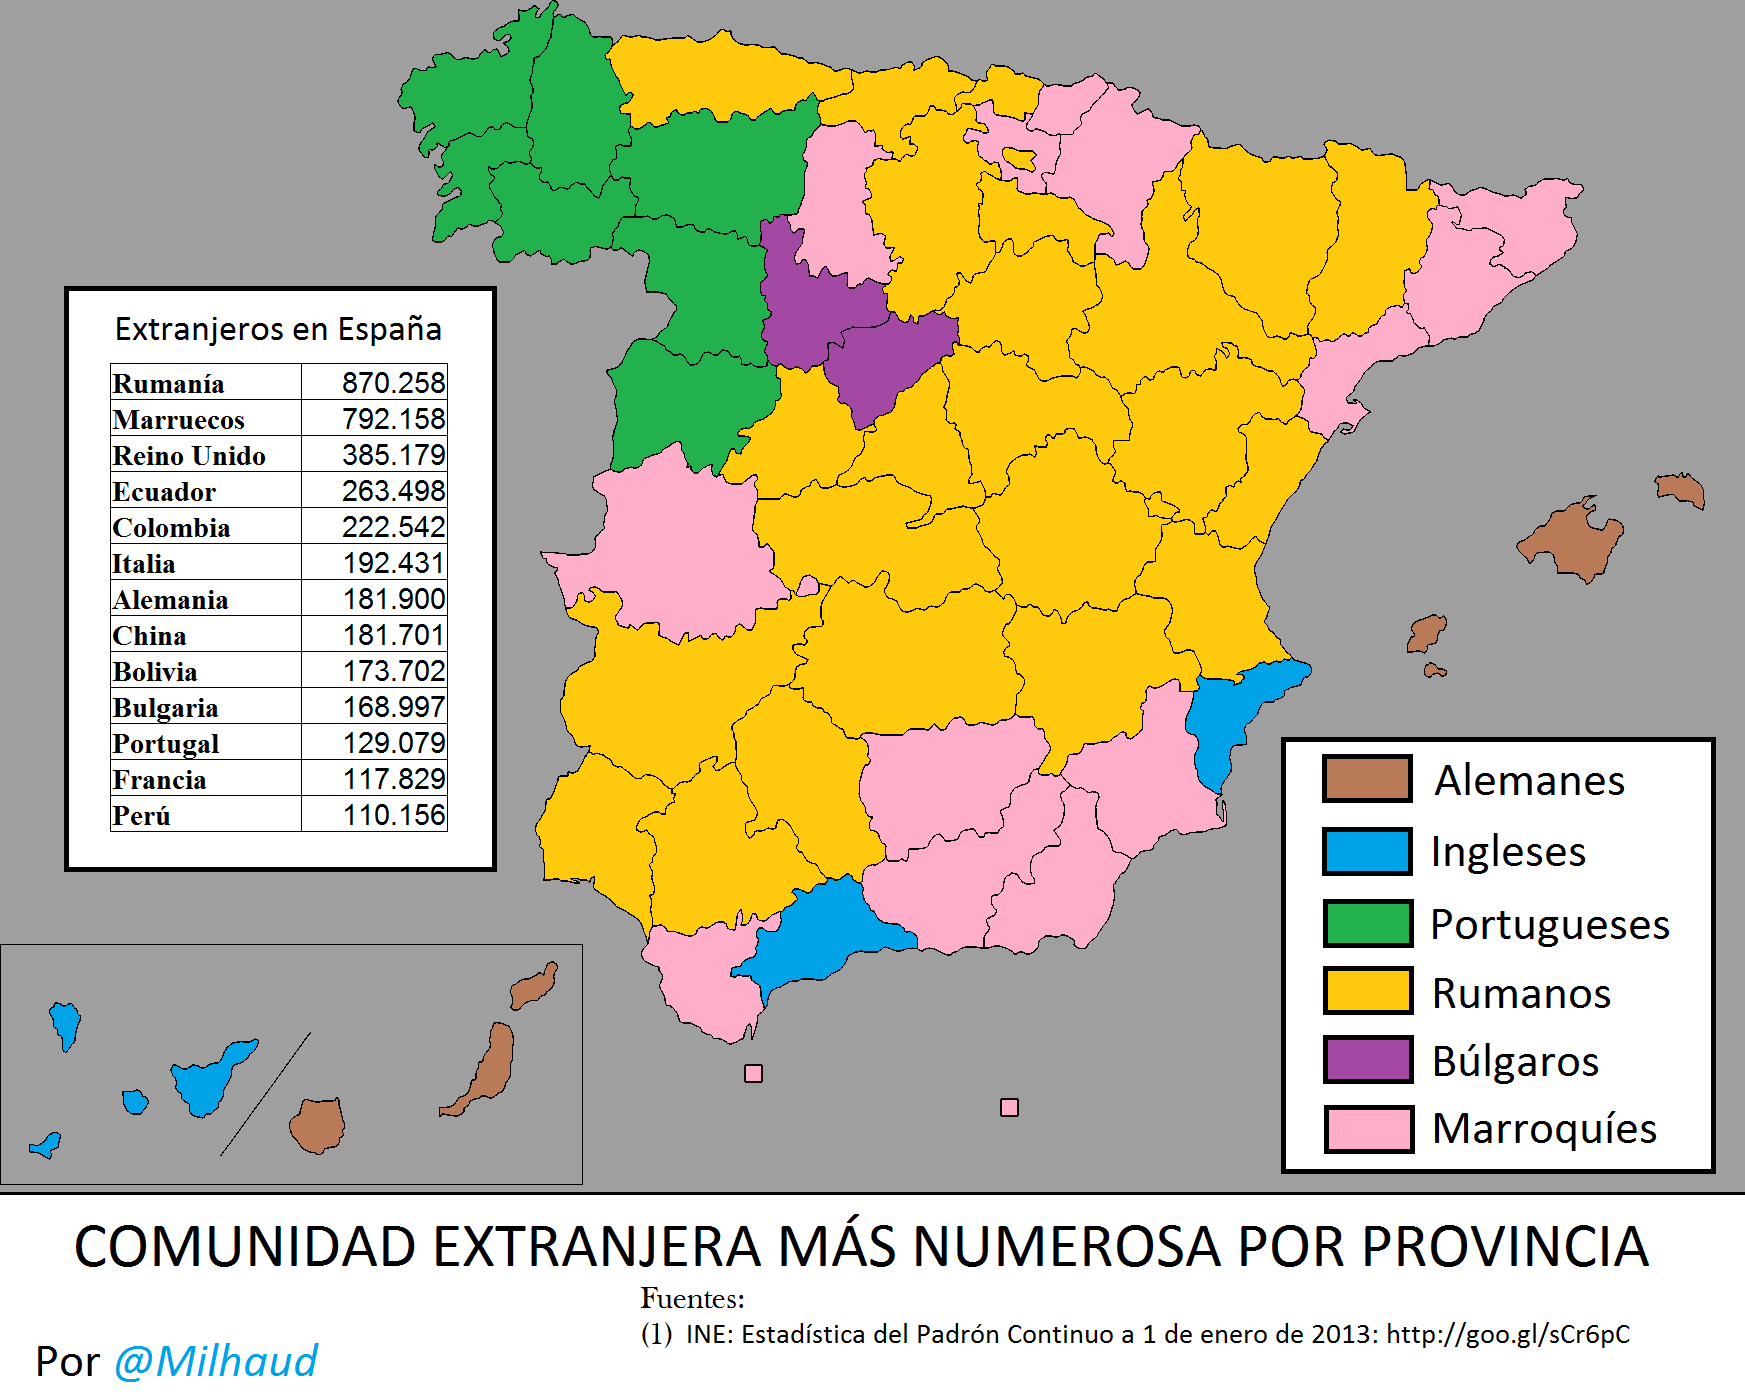 Biggest foreign communities in Spain